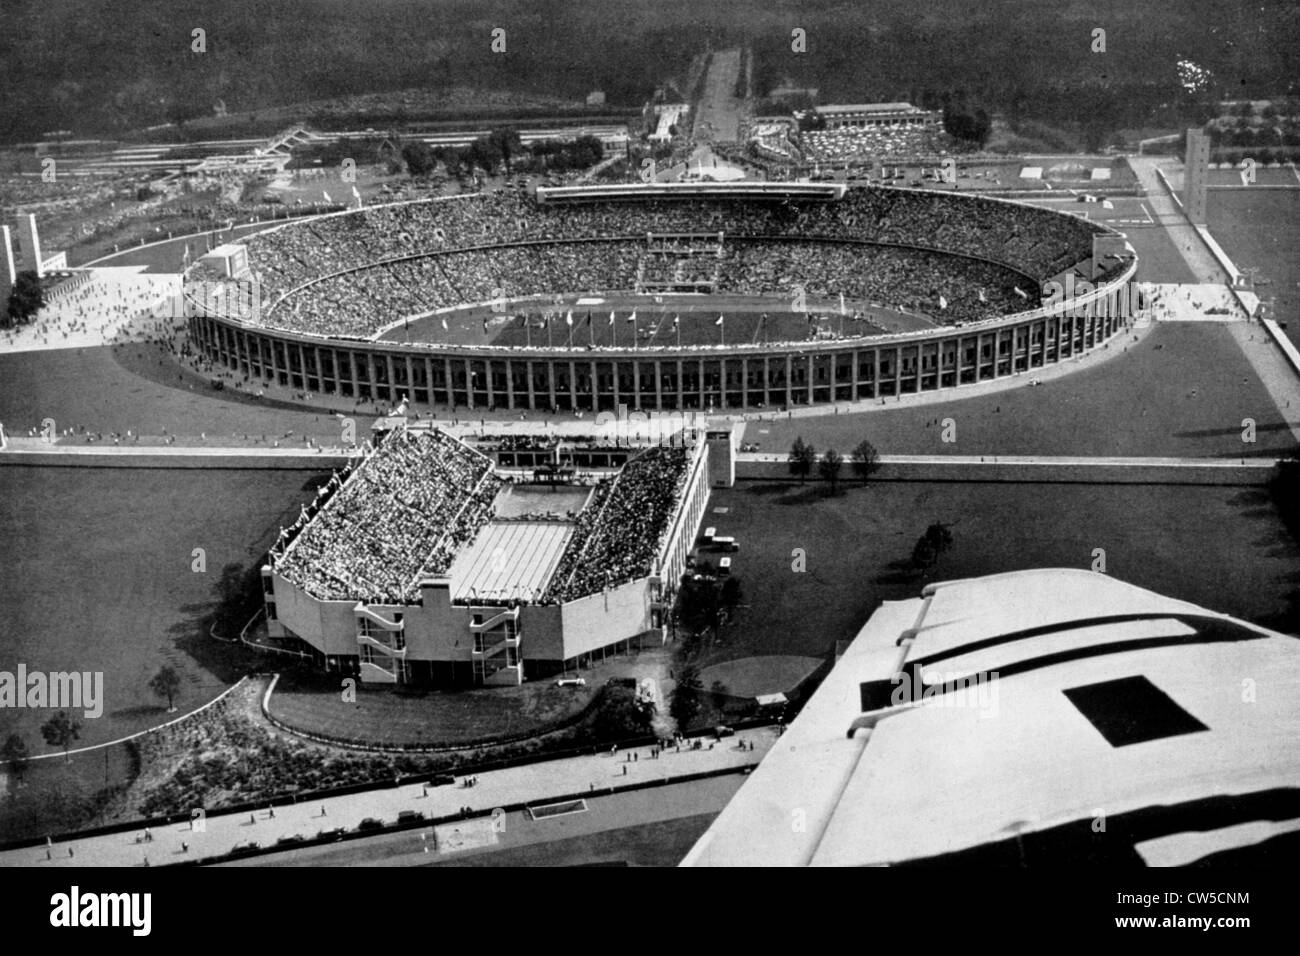 Berlin Olympic games, the olympic stadium - Stock Image